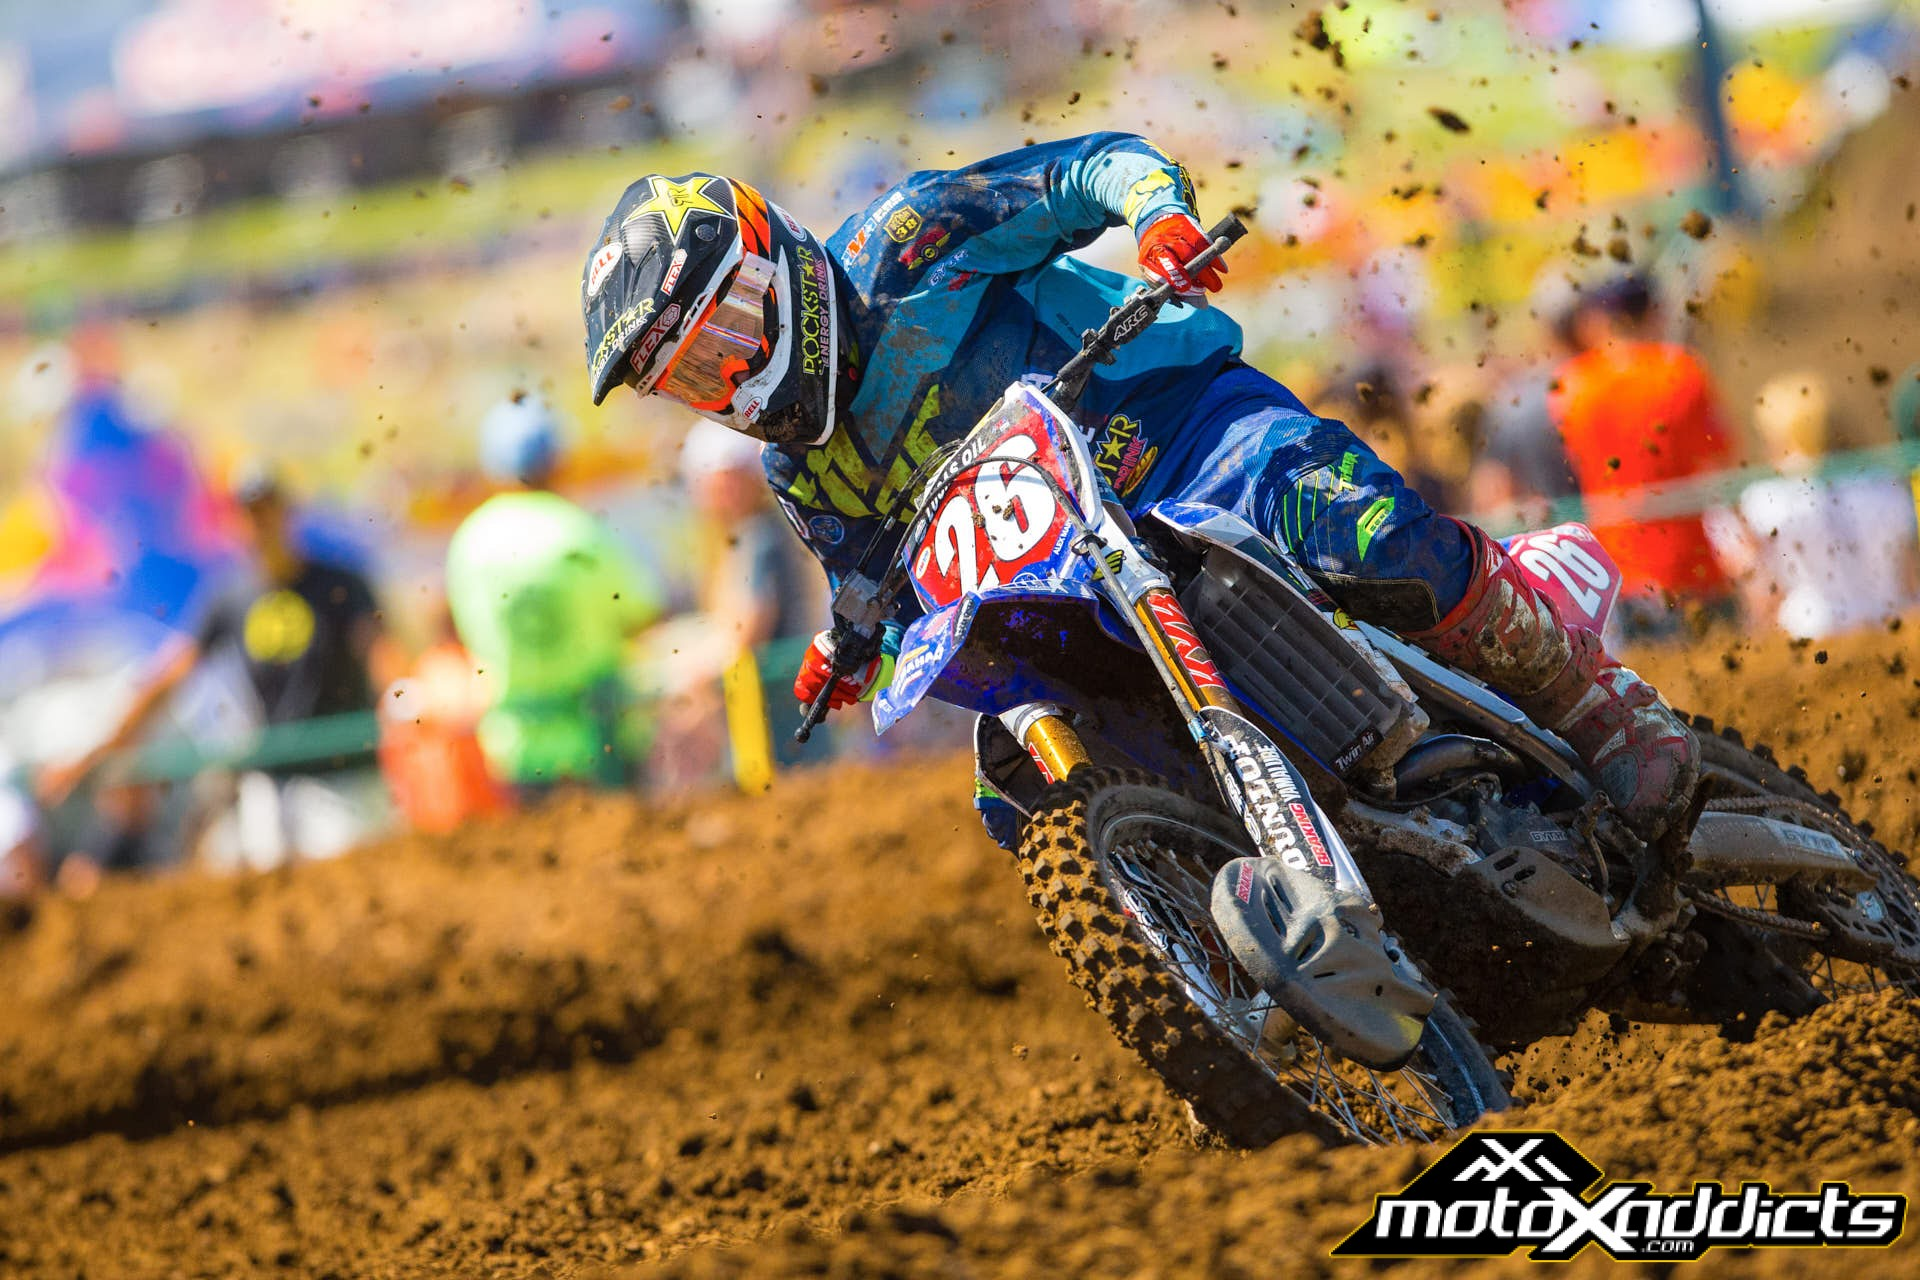 Alex Martin is the biggest surprise of 2016 thus far. He is proving to be a  genuine Championship threat.